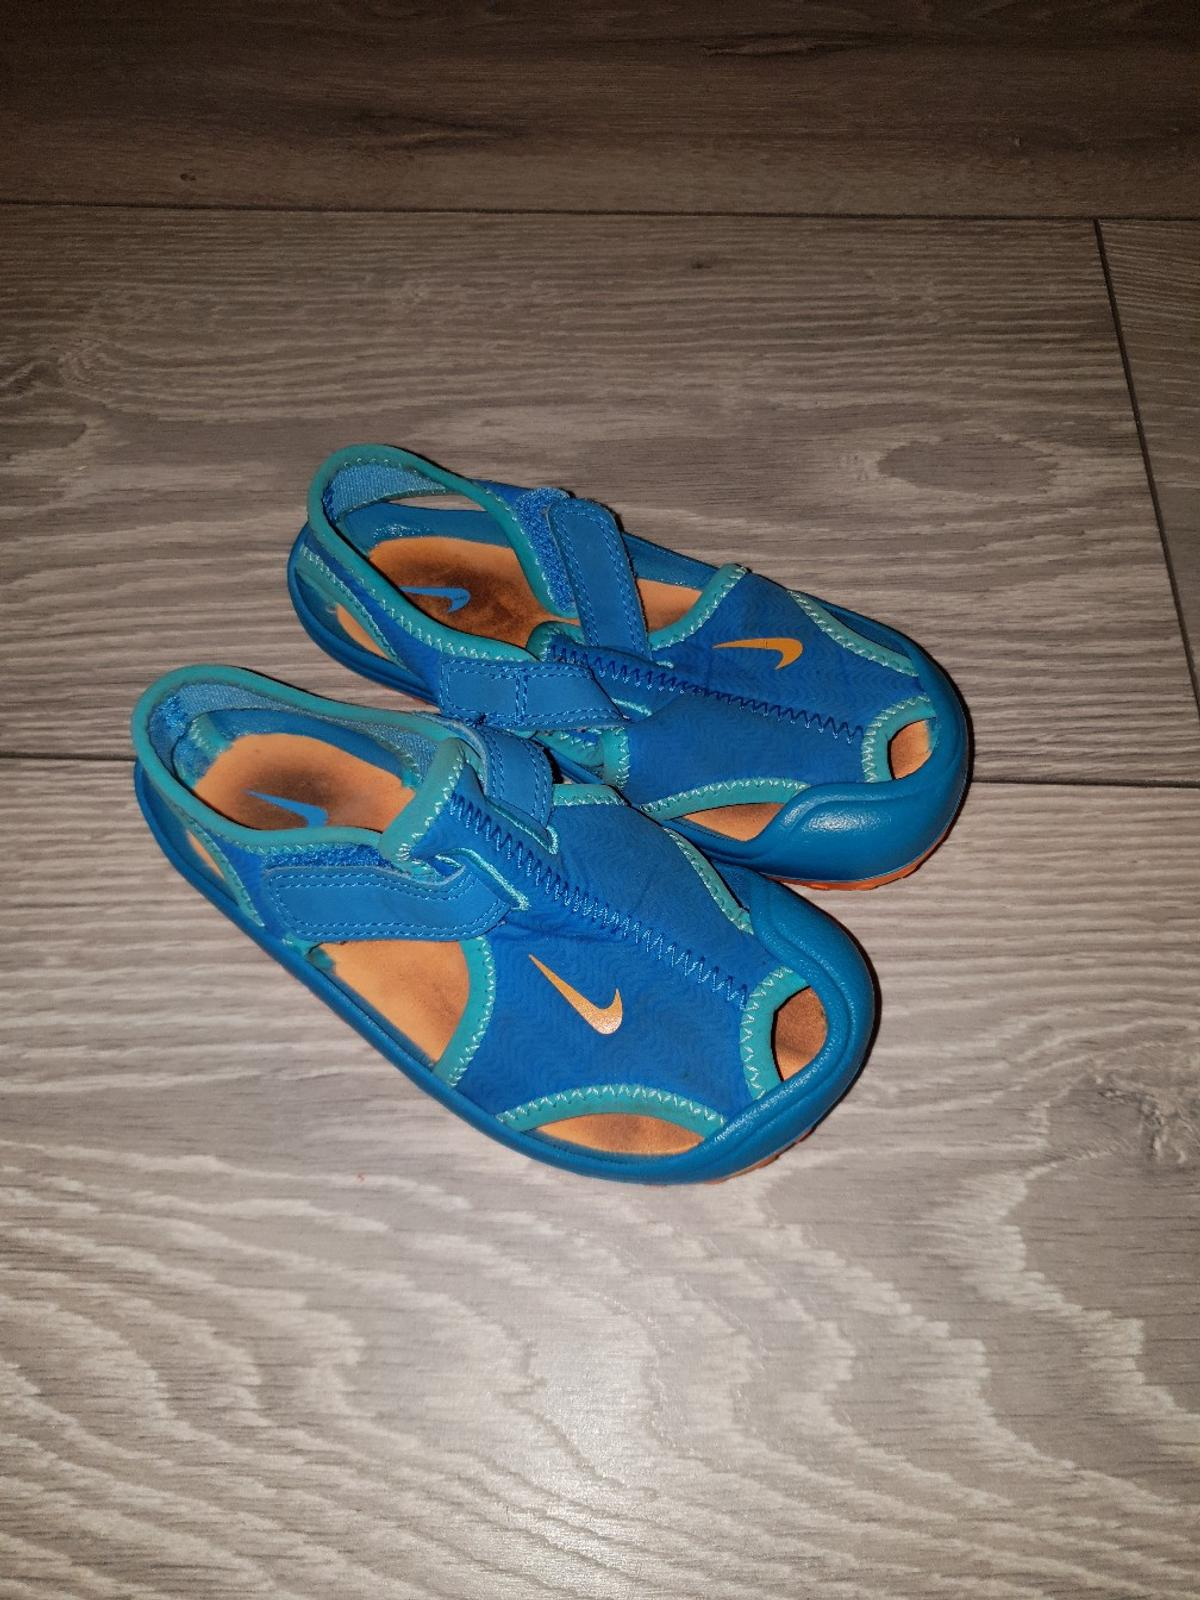 959cabcd15c3 boys Nike sandals size 7 in WS10 Walsall for £3.00 for sale - Shpock